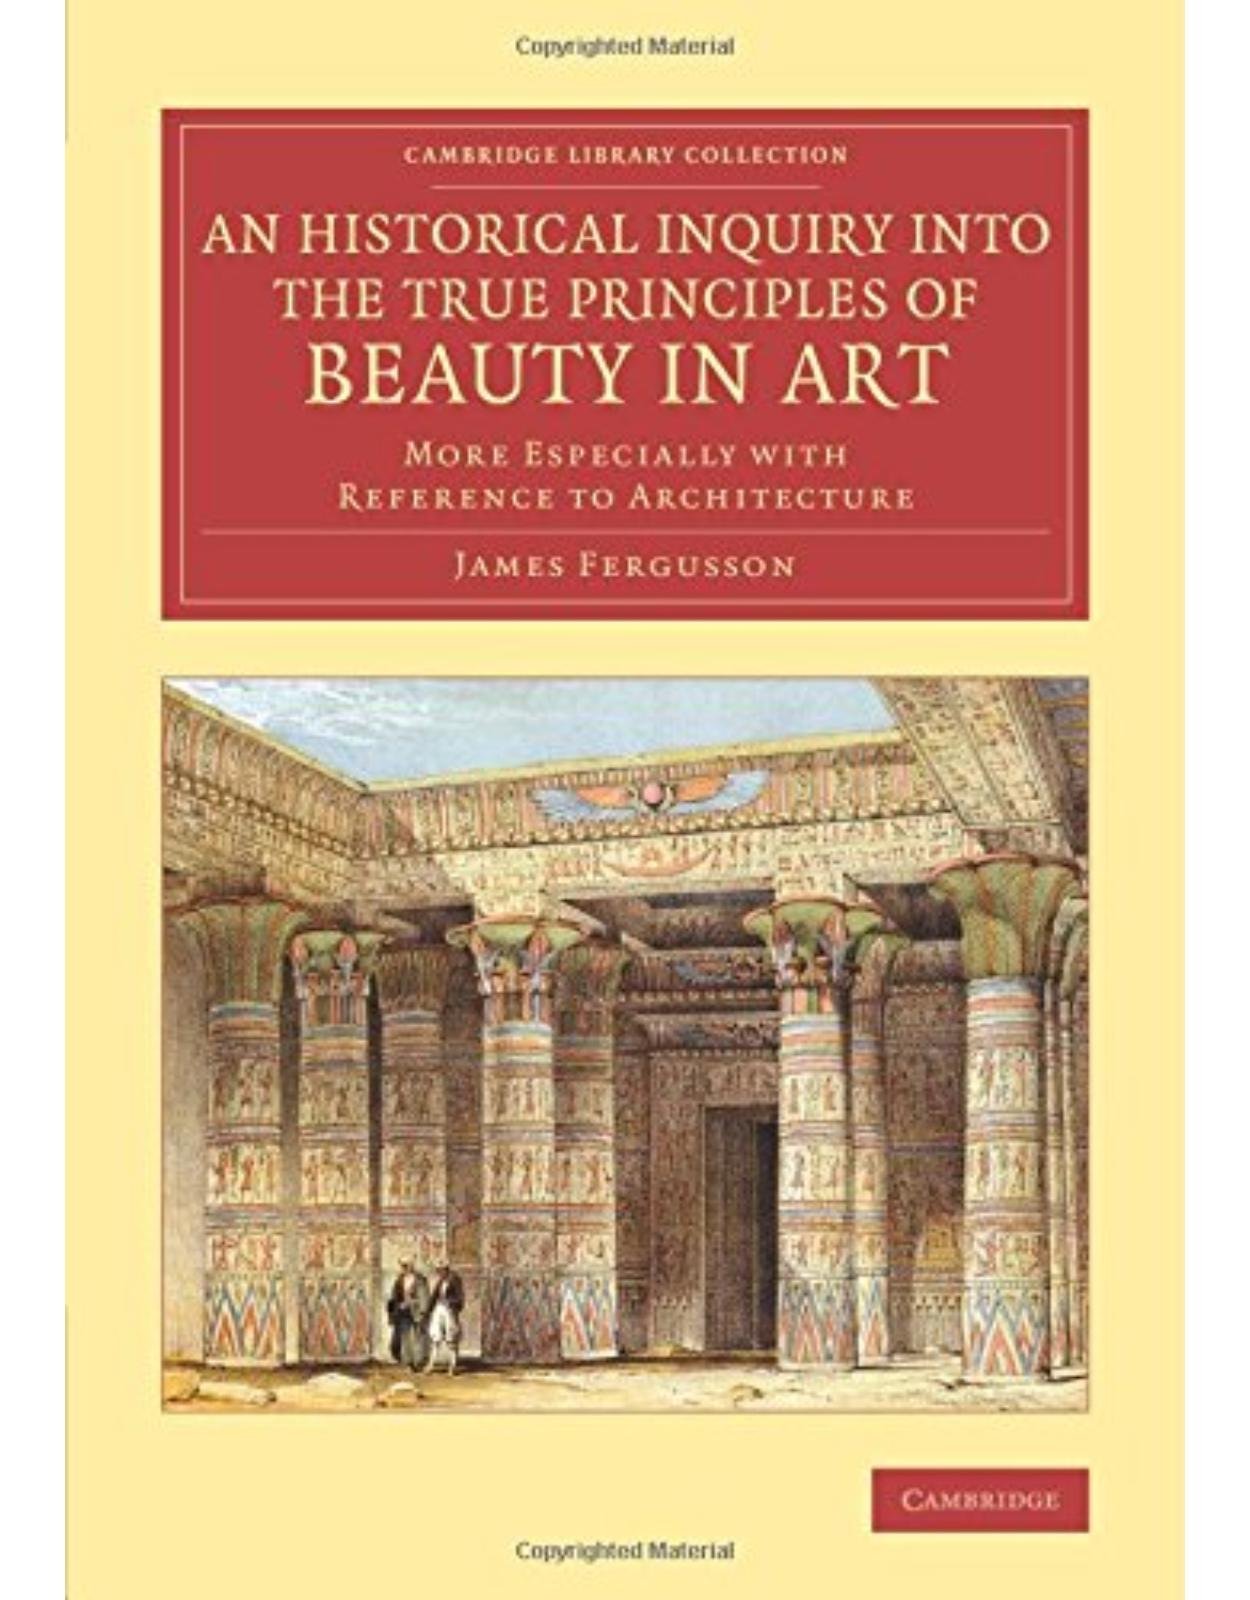 An Historical Inquiry into the True Principles of Beauty in Art: More Especially with Reference to Architecture (Cambridge Library Collection - Art and Architecture)